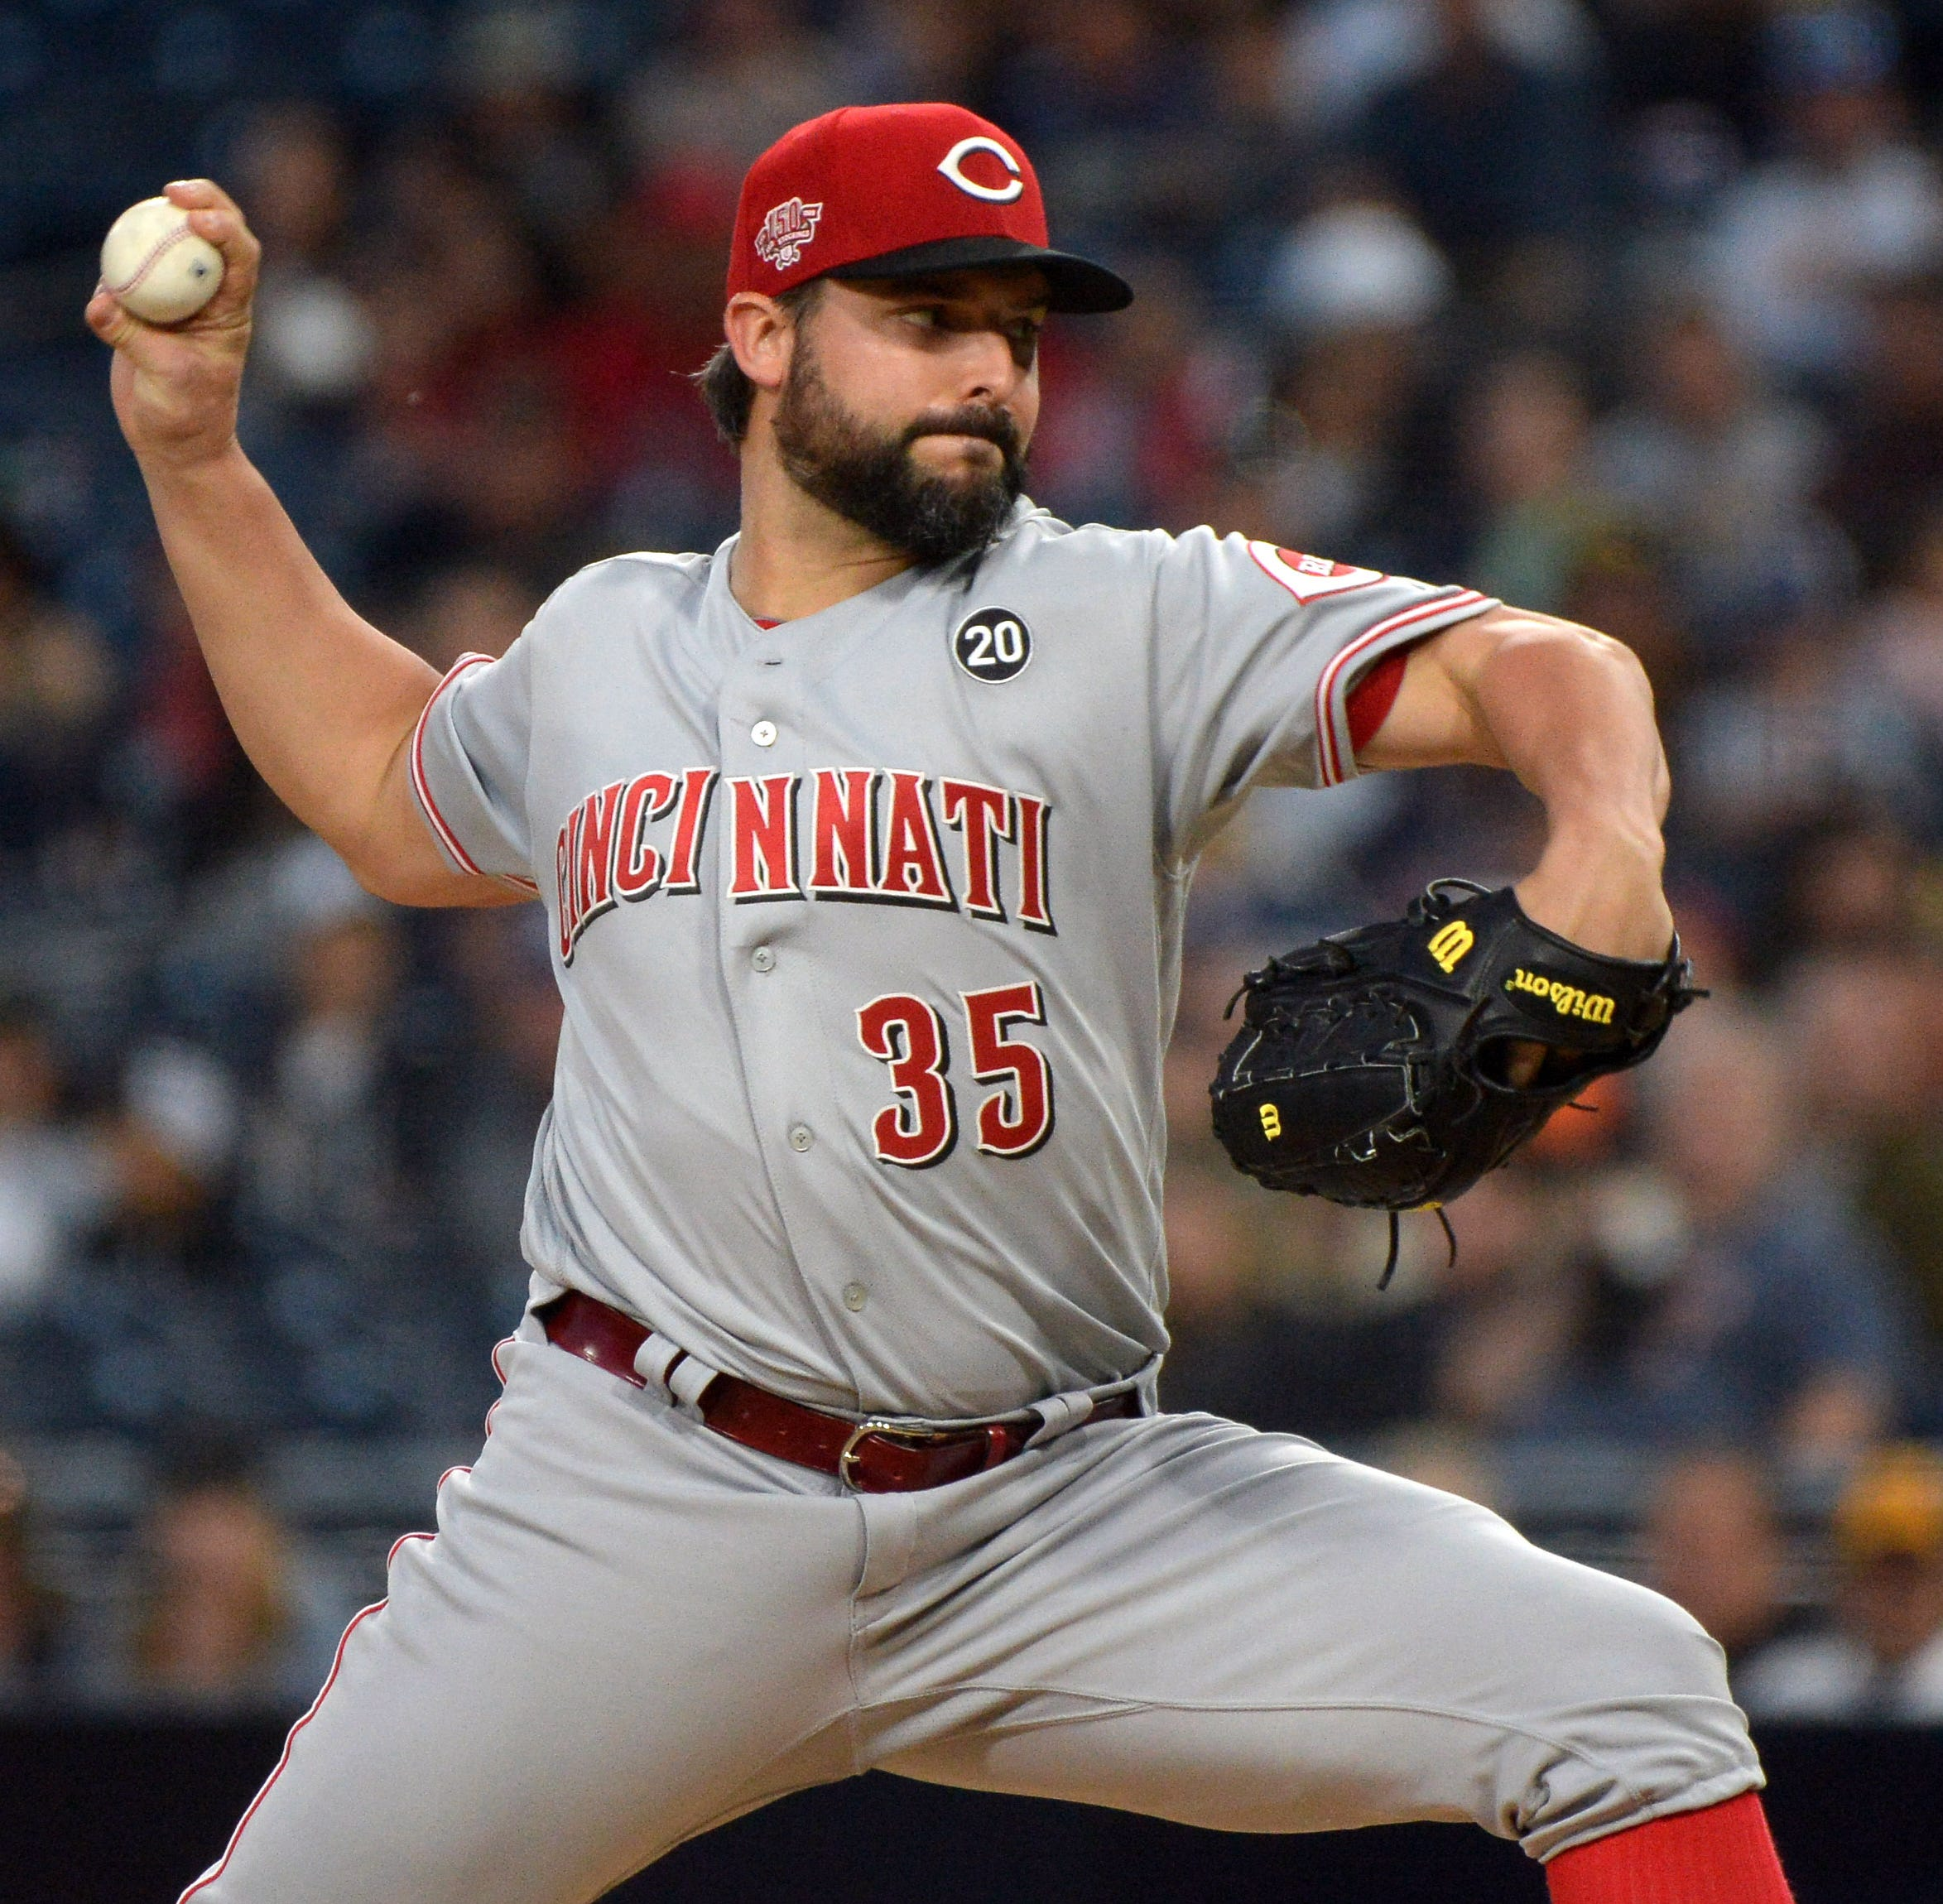 Despite record, Cincinnati Reds' starting rotation has exceeded expectations